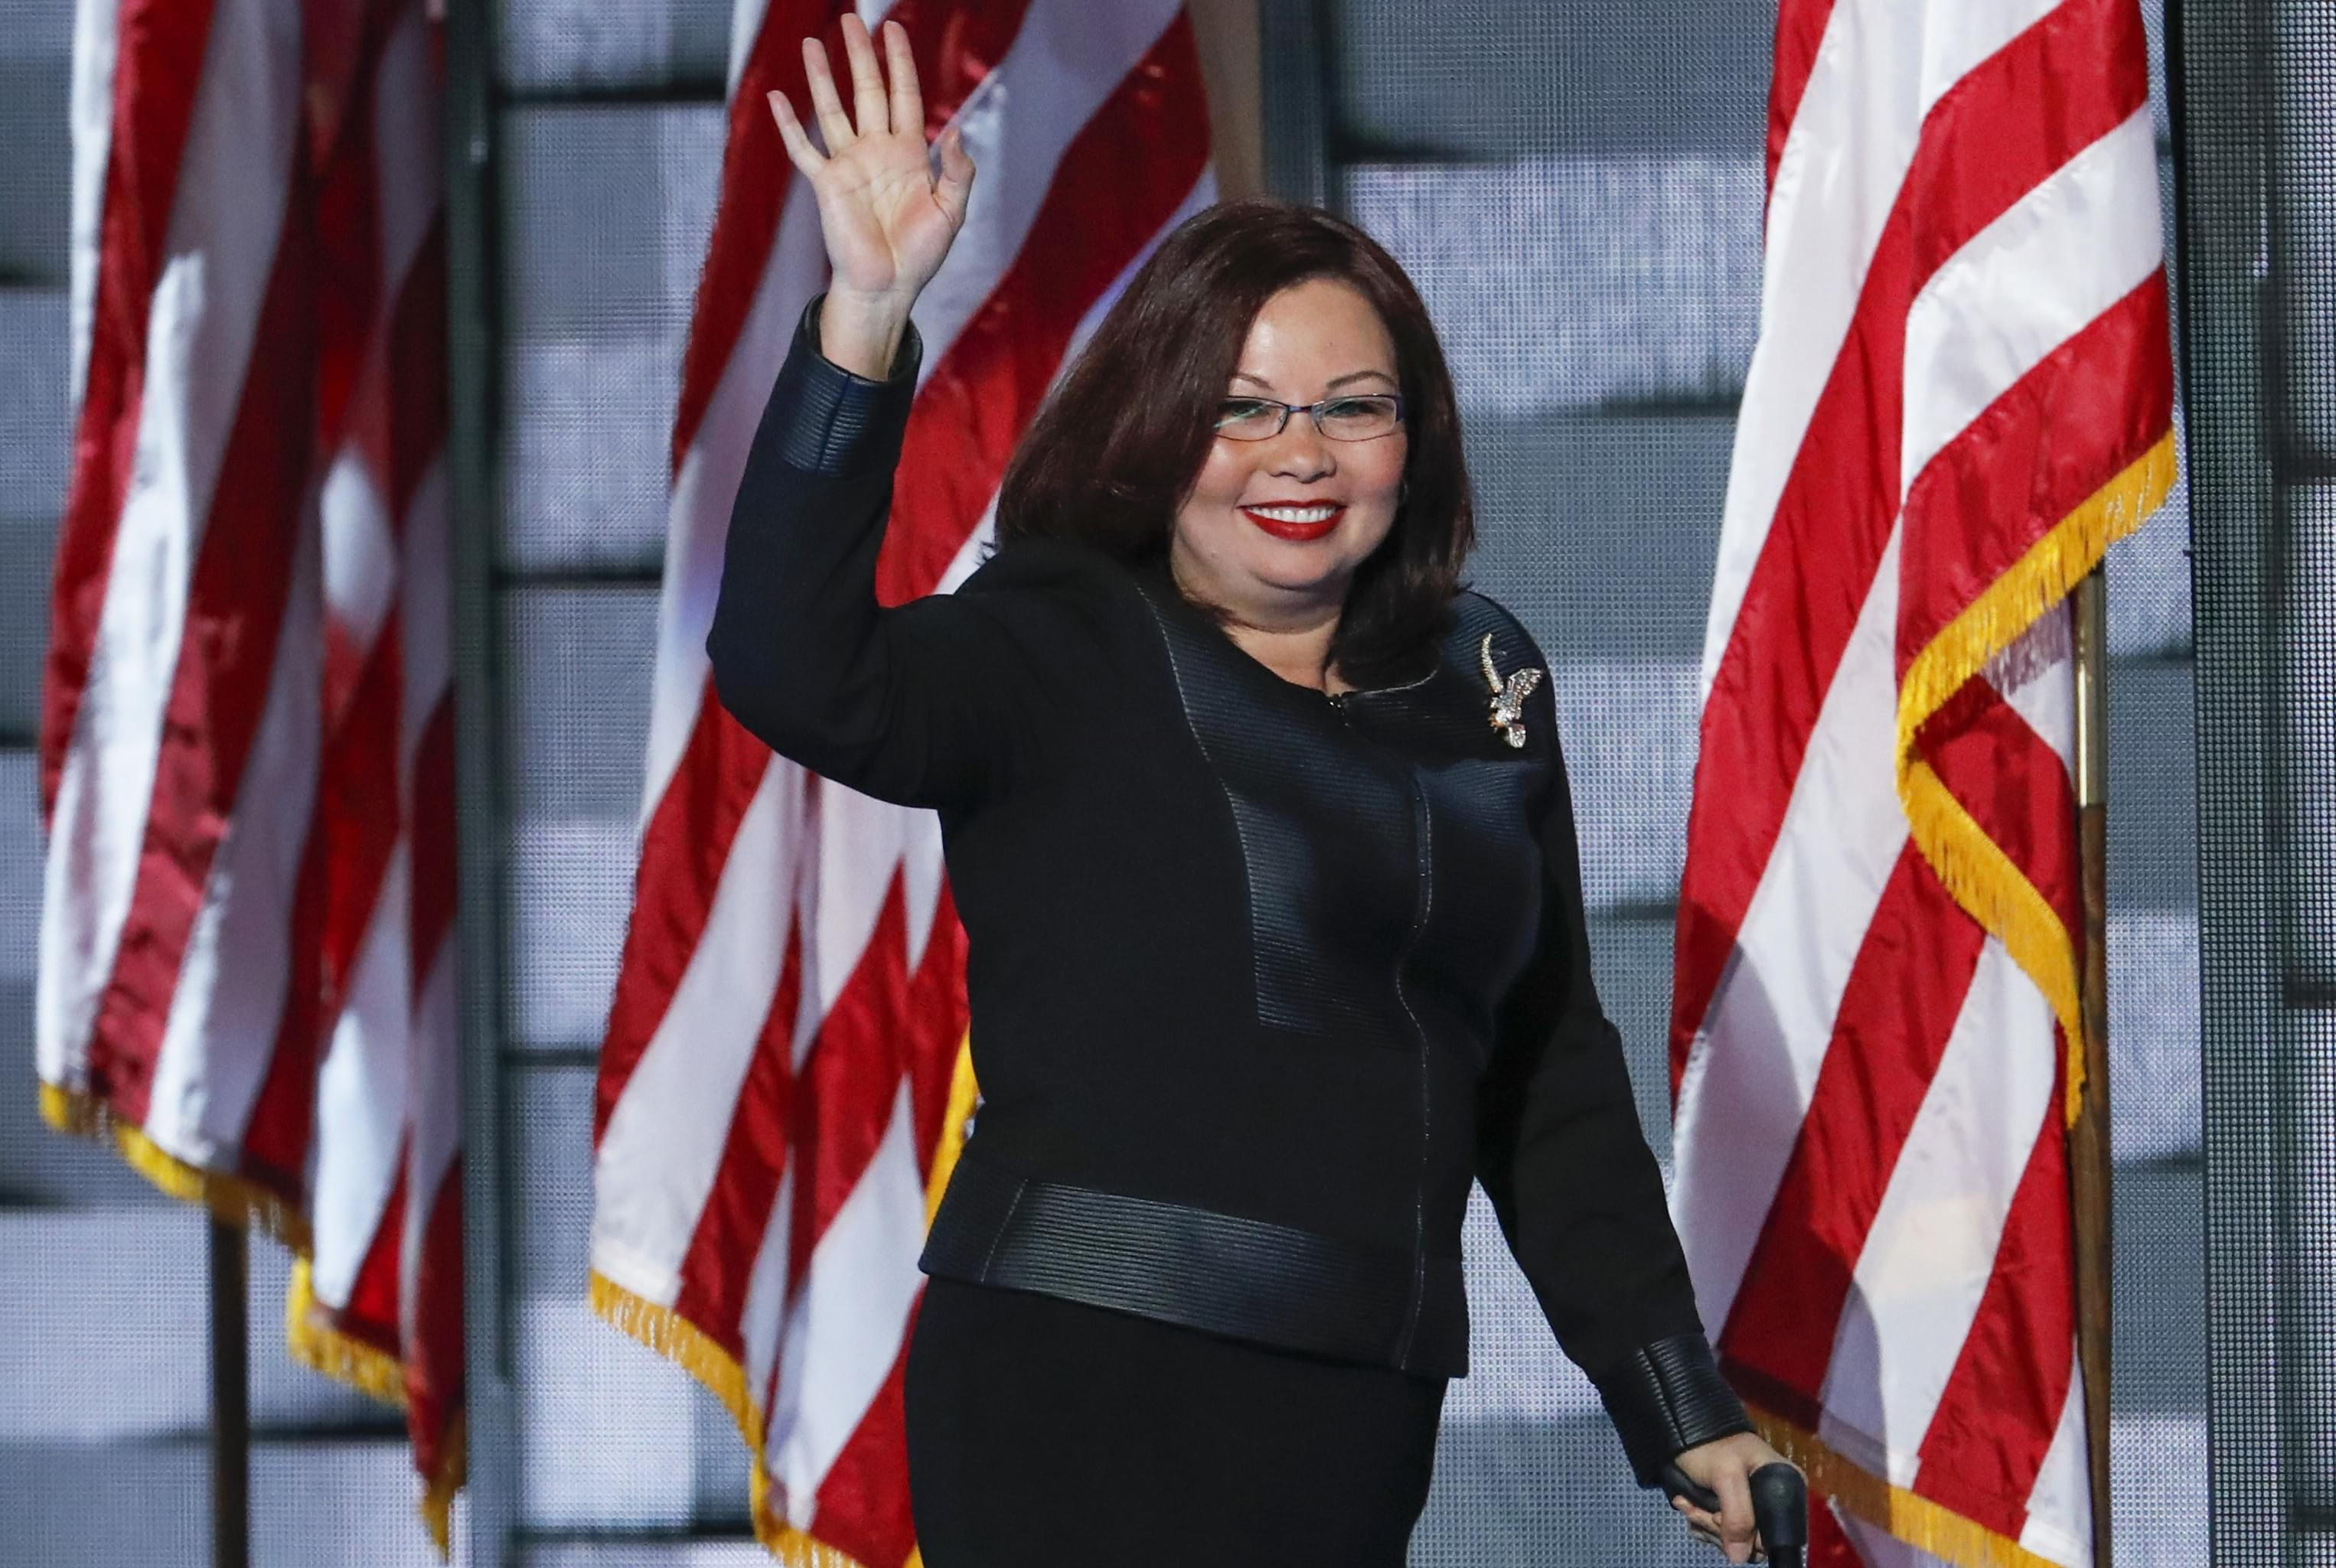 Rep. Tammy Duckworth, D-Ill., waves to delegates during the final day of the Democratic National Convention in Philadelphia, Thursday, July 28, 2016.